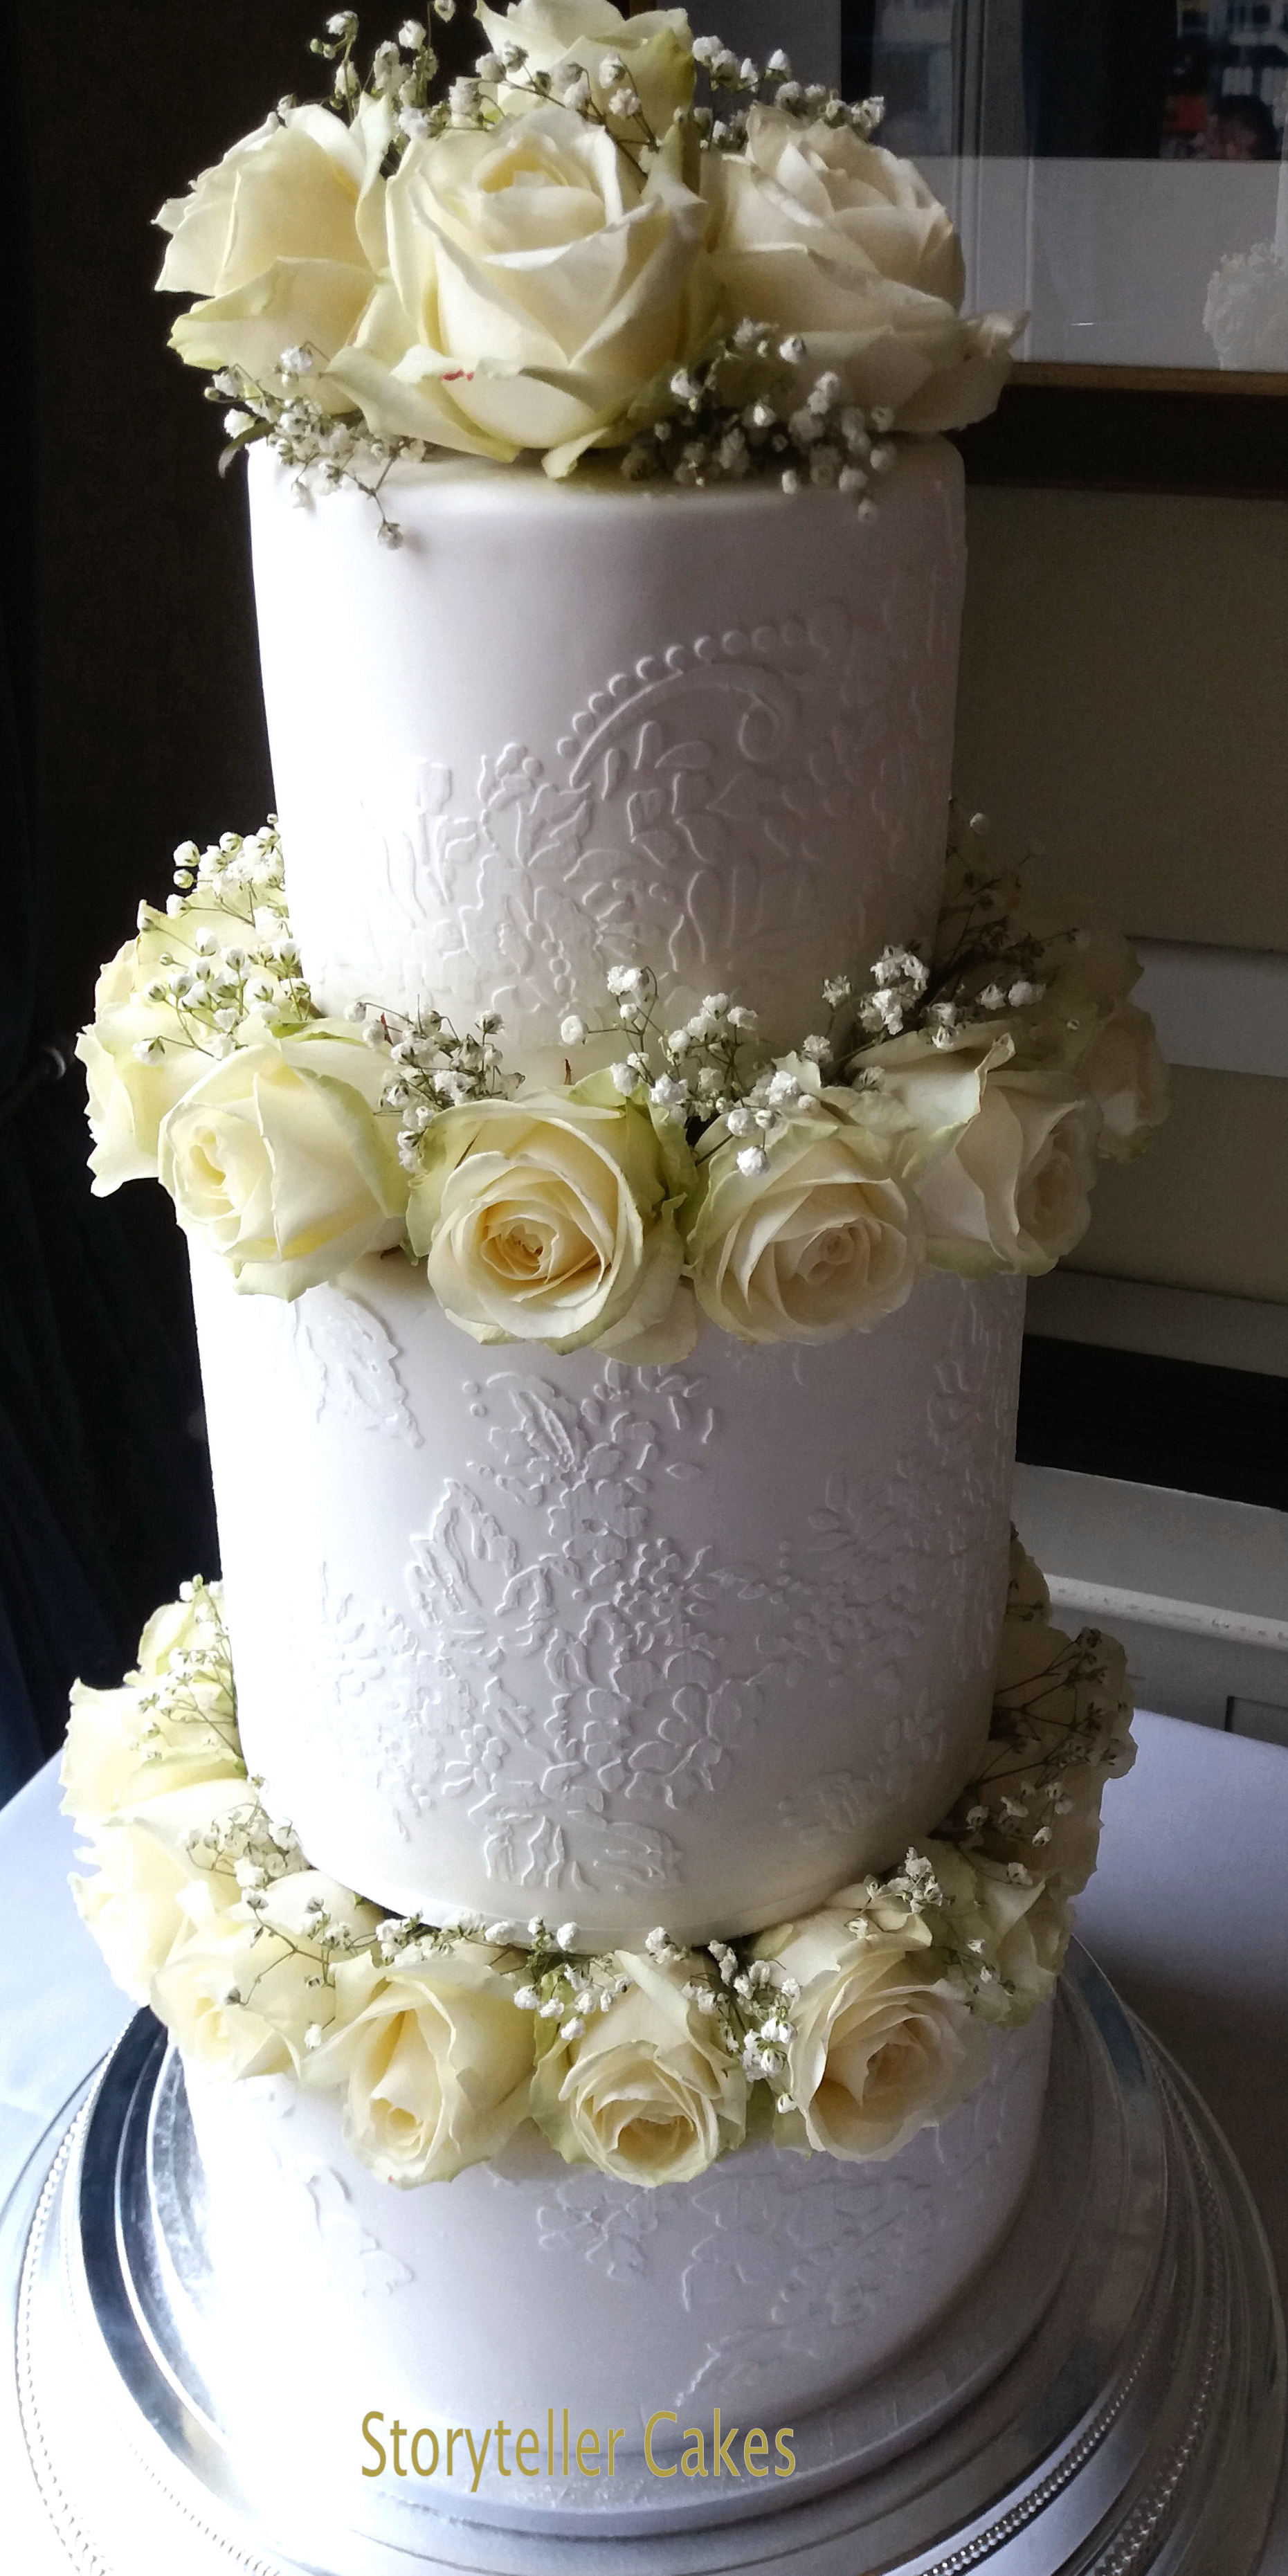 Rose & Lace Wedding Cake2.jpg